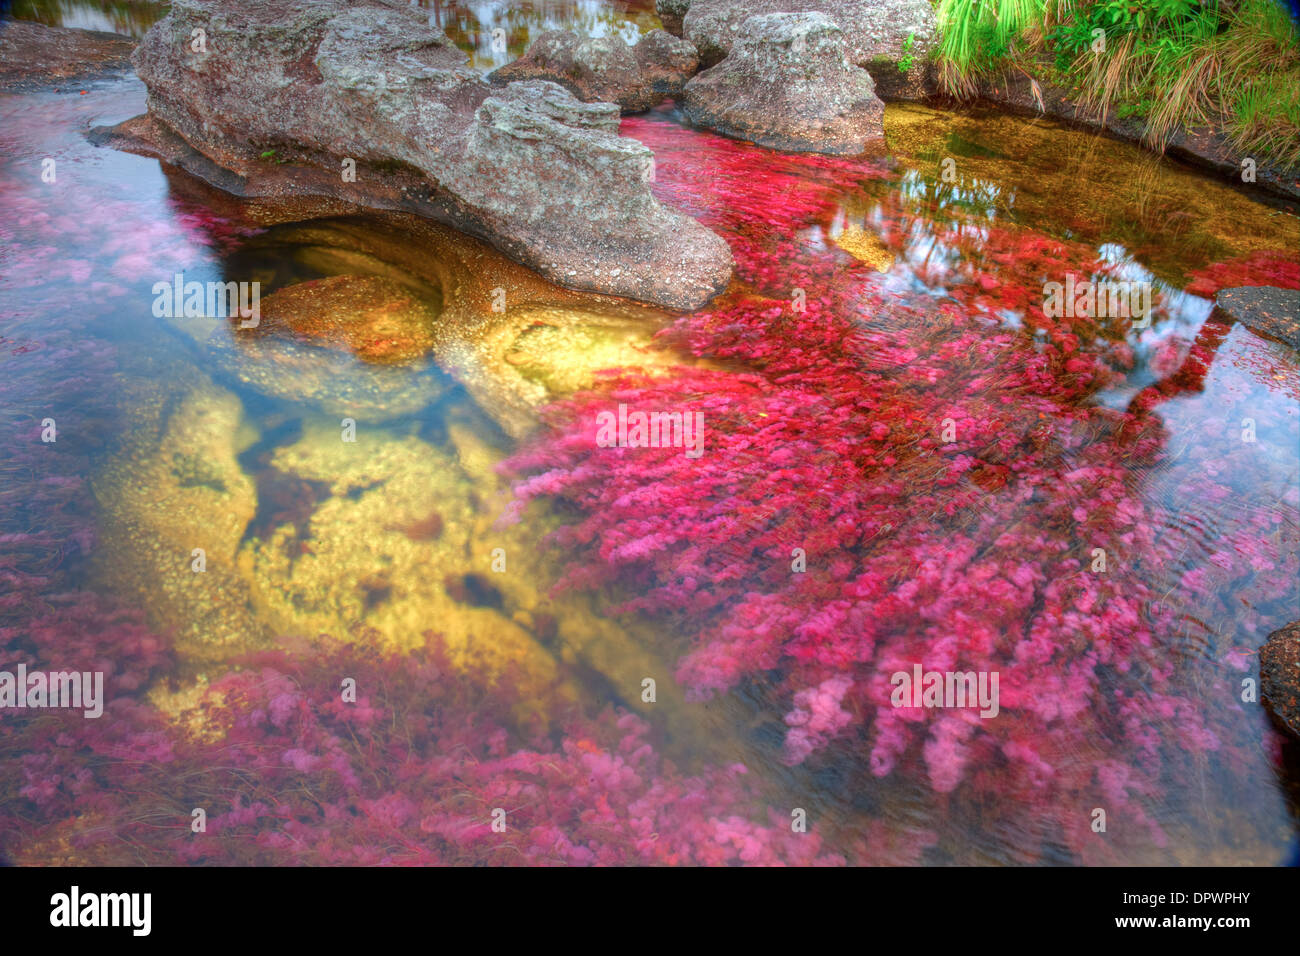 Colors at Cano Cristales, Colombia Underwater plants (Macarenia clarigera) endemic to small stream and area, Llano area - Stock Image